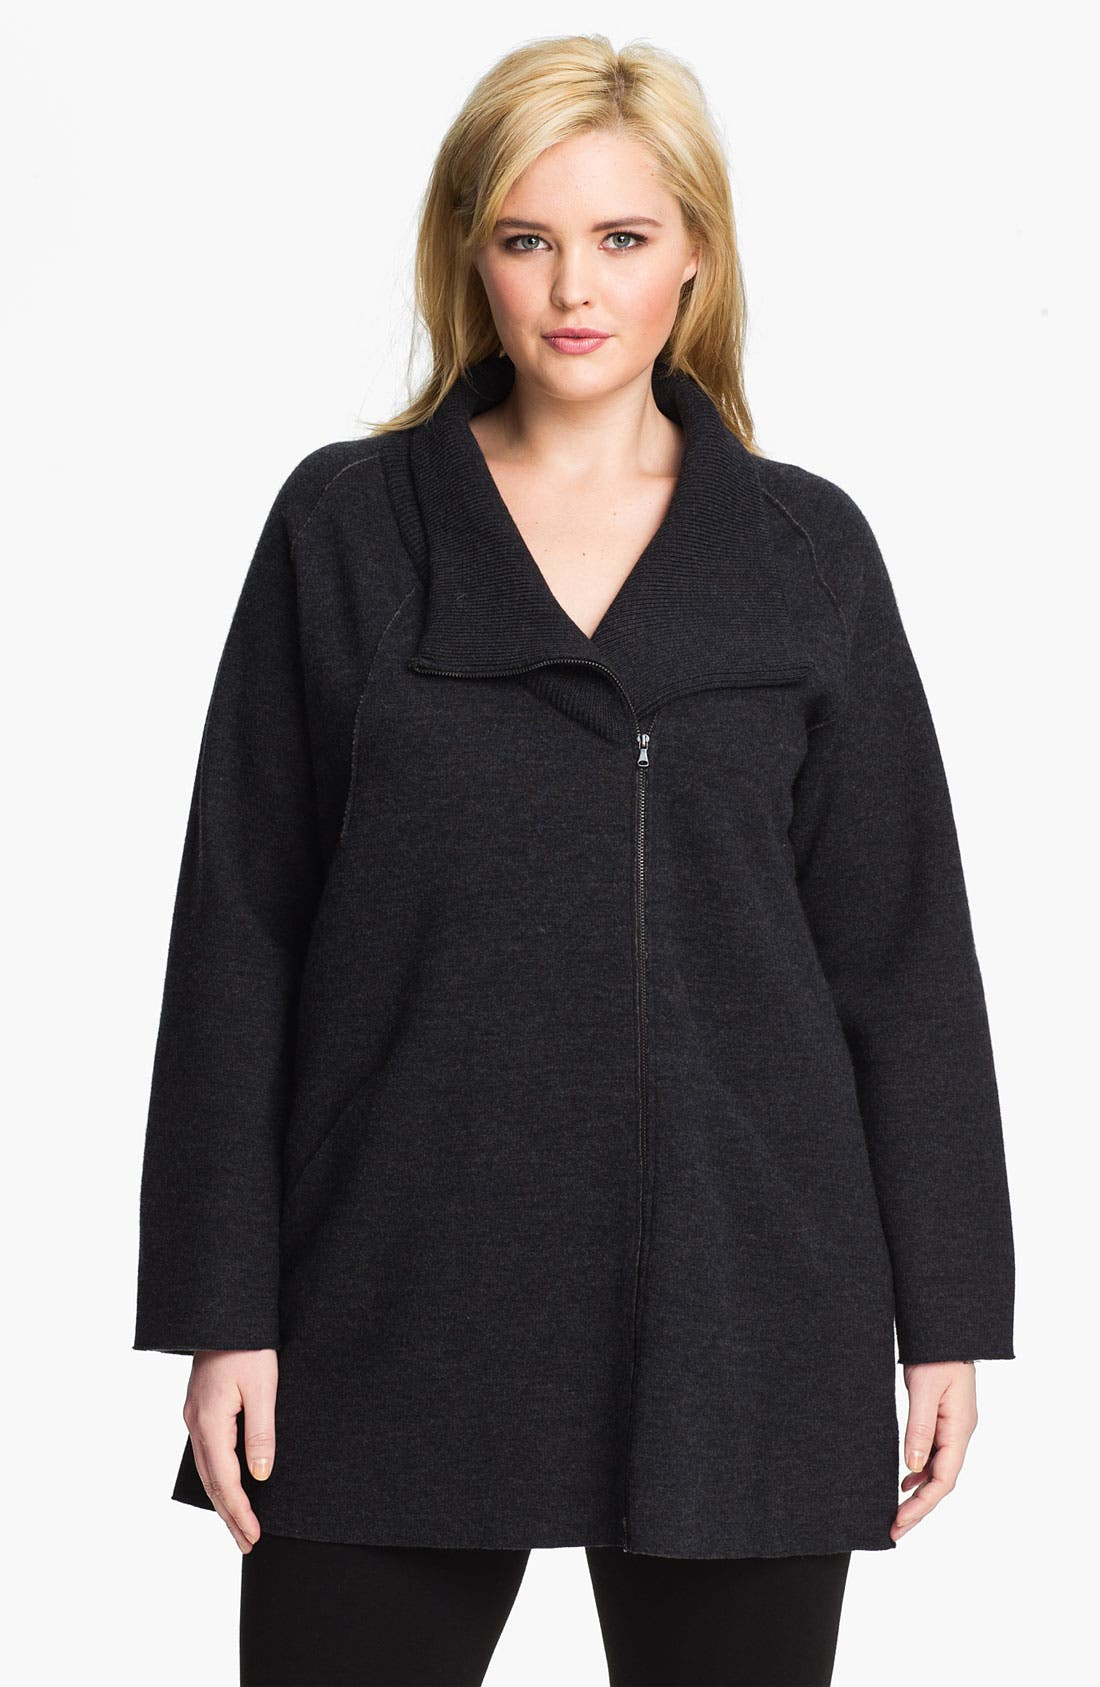 Alternate Image 1 Selected - Eileen Fisher Felted Merino Double Knit Jacket (Plus)